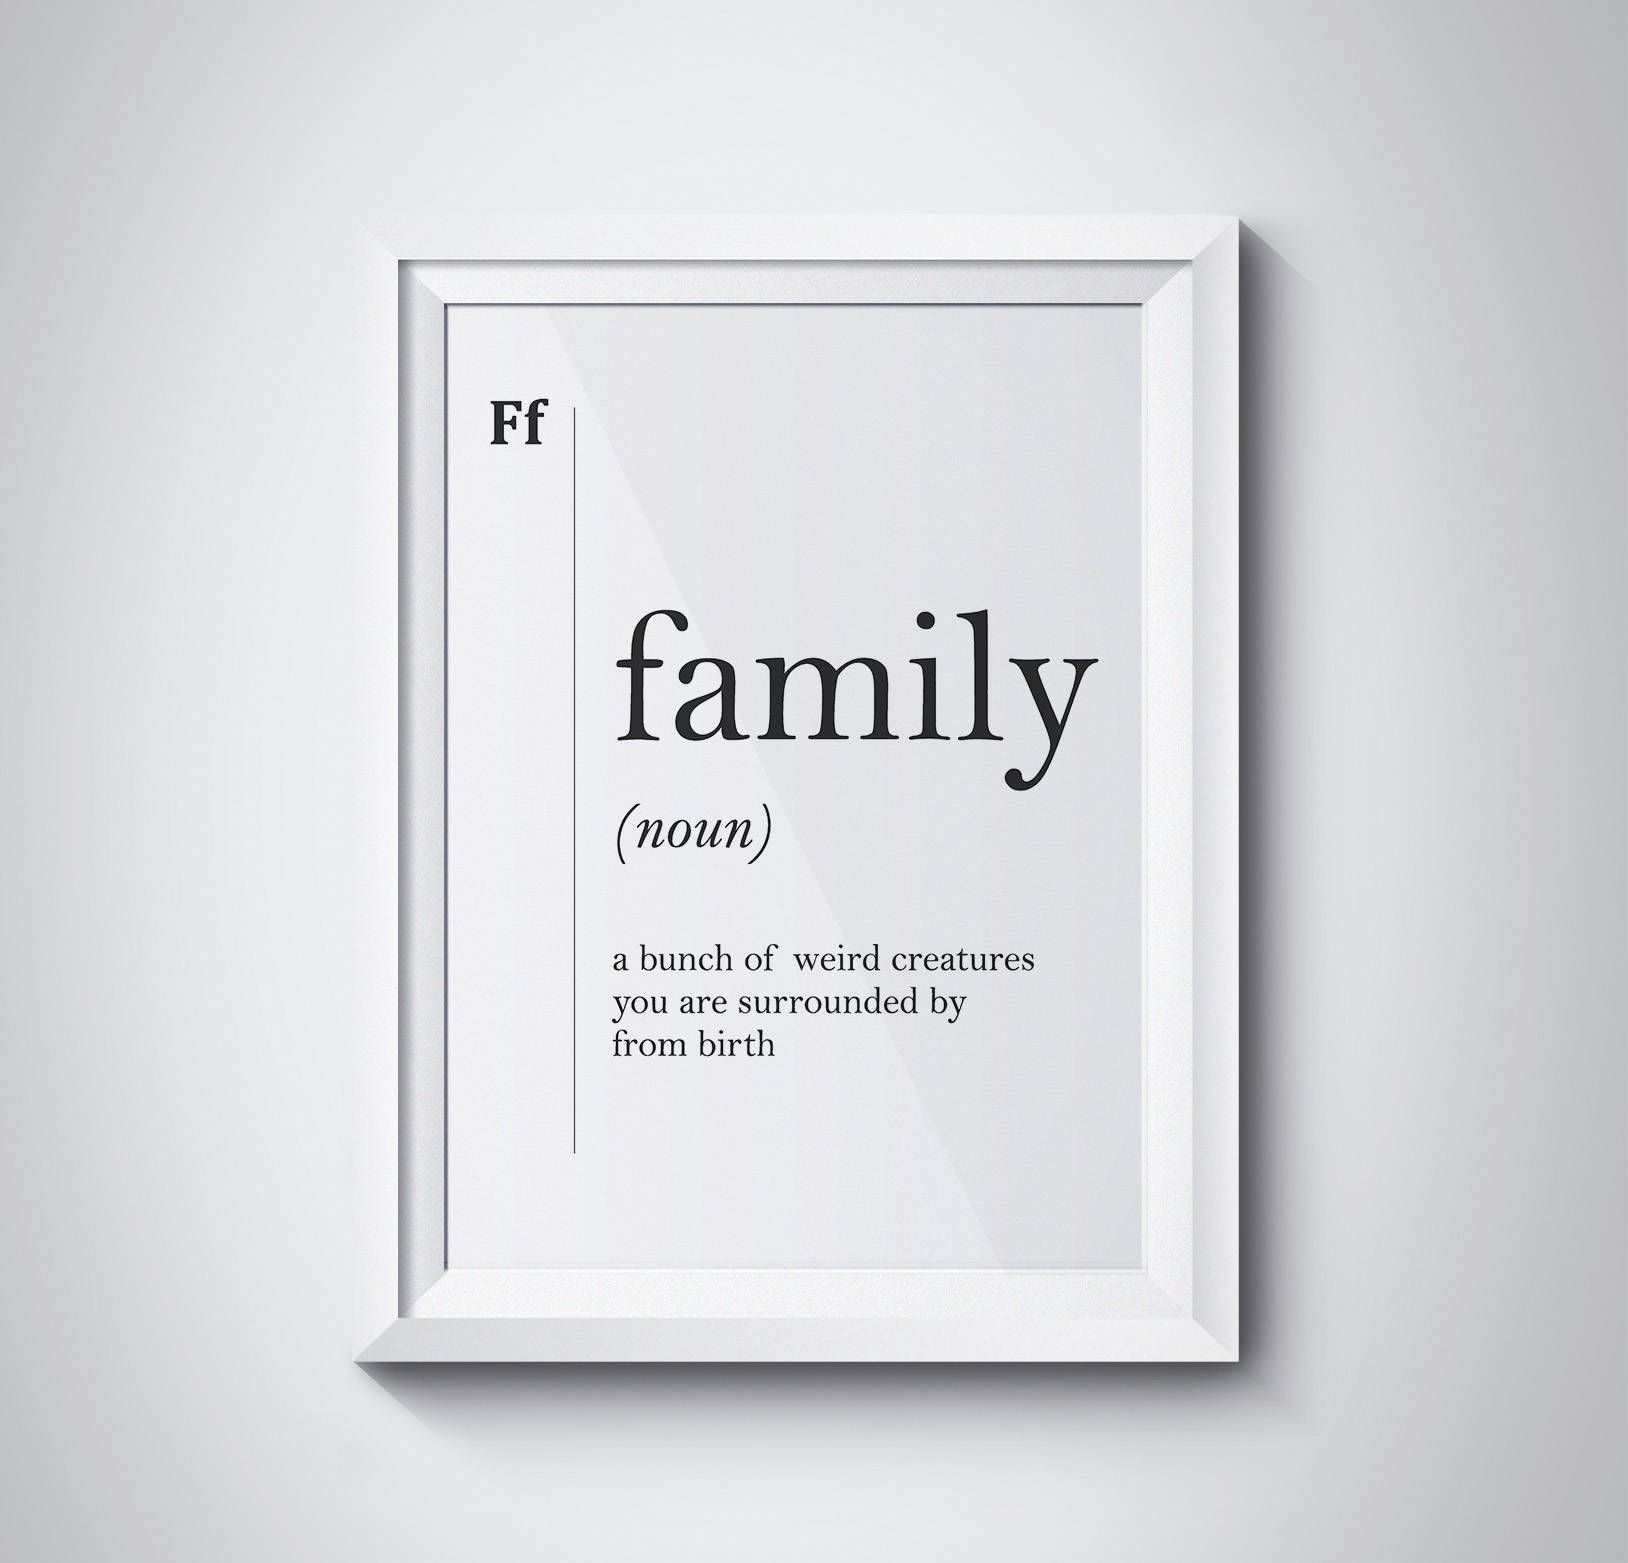 Family Definition Art, Family Wall Art, Funny Definition Art, Minimalist Art, Family Print, Definition Prints, Affiche Definition, #HQDEF002 by HQstudio on Etsy